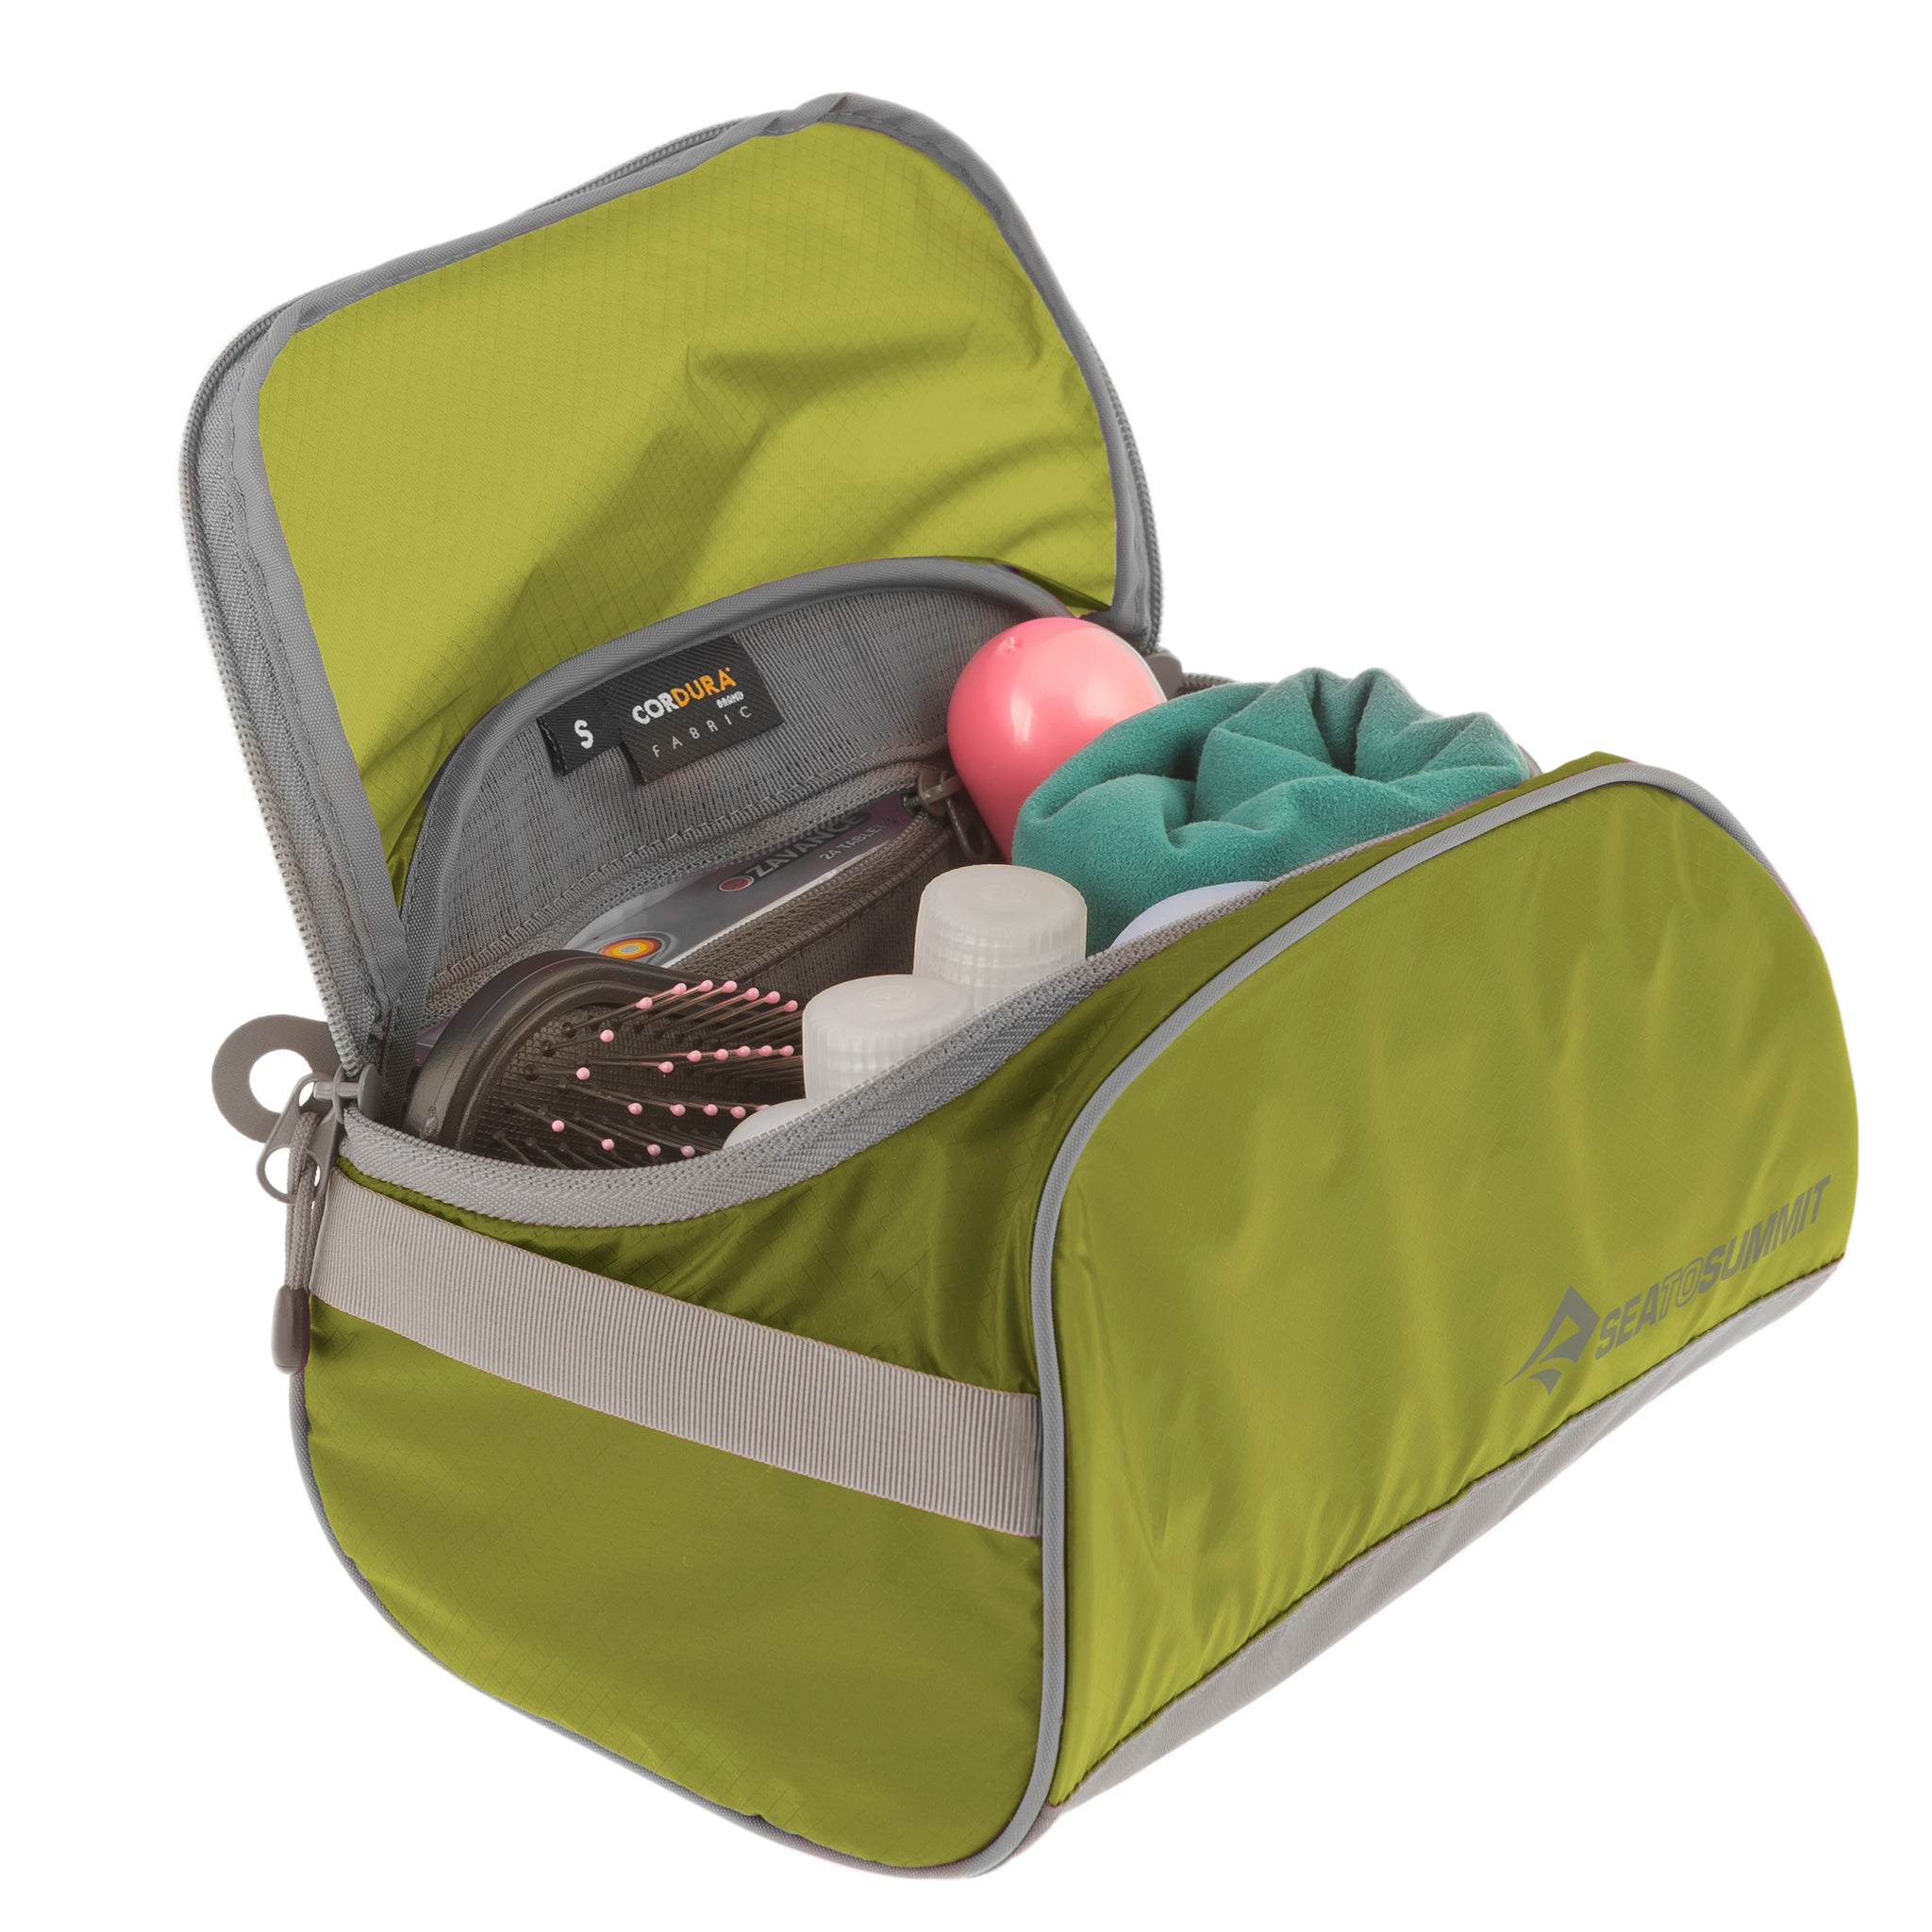 Travelling Light _Toiletry Cell _ waterproof _ Lime